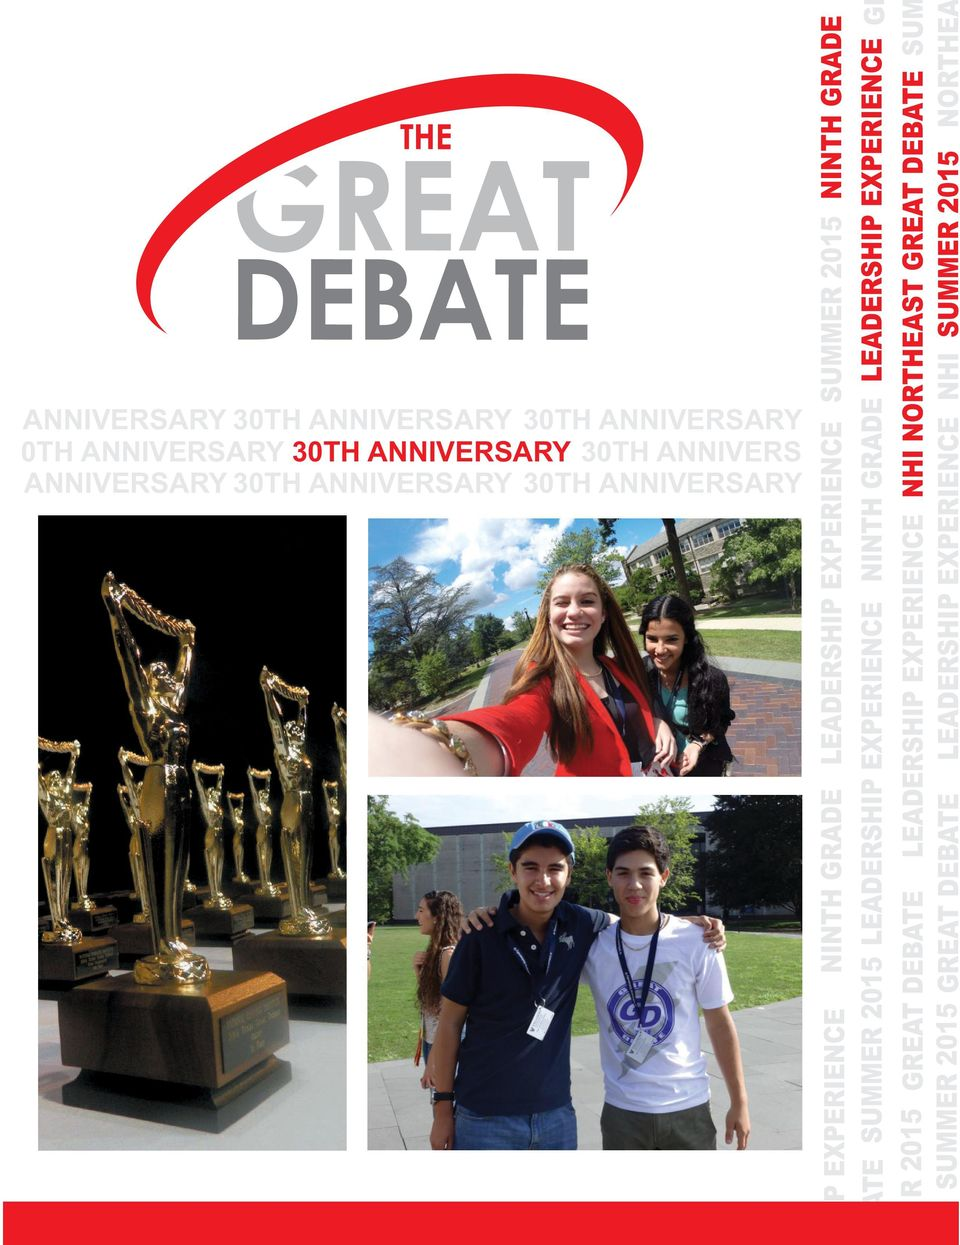 GREAT DEBATE SU SUMMER 2015 GREAT DEBATE LEADERSHIP EXPERIENCE NHI SUMMER 2015 NORTHE ANNIVERSARY 30TH